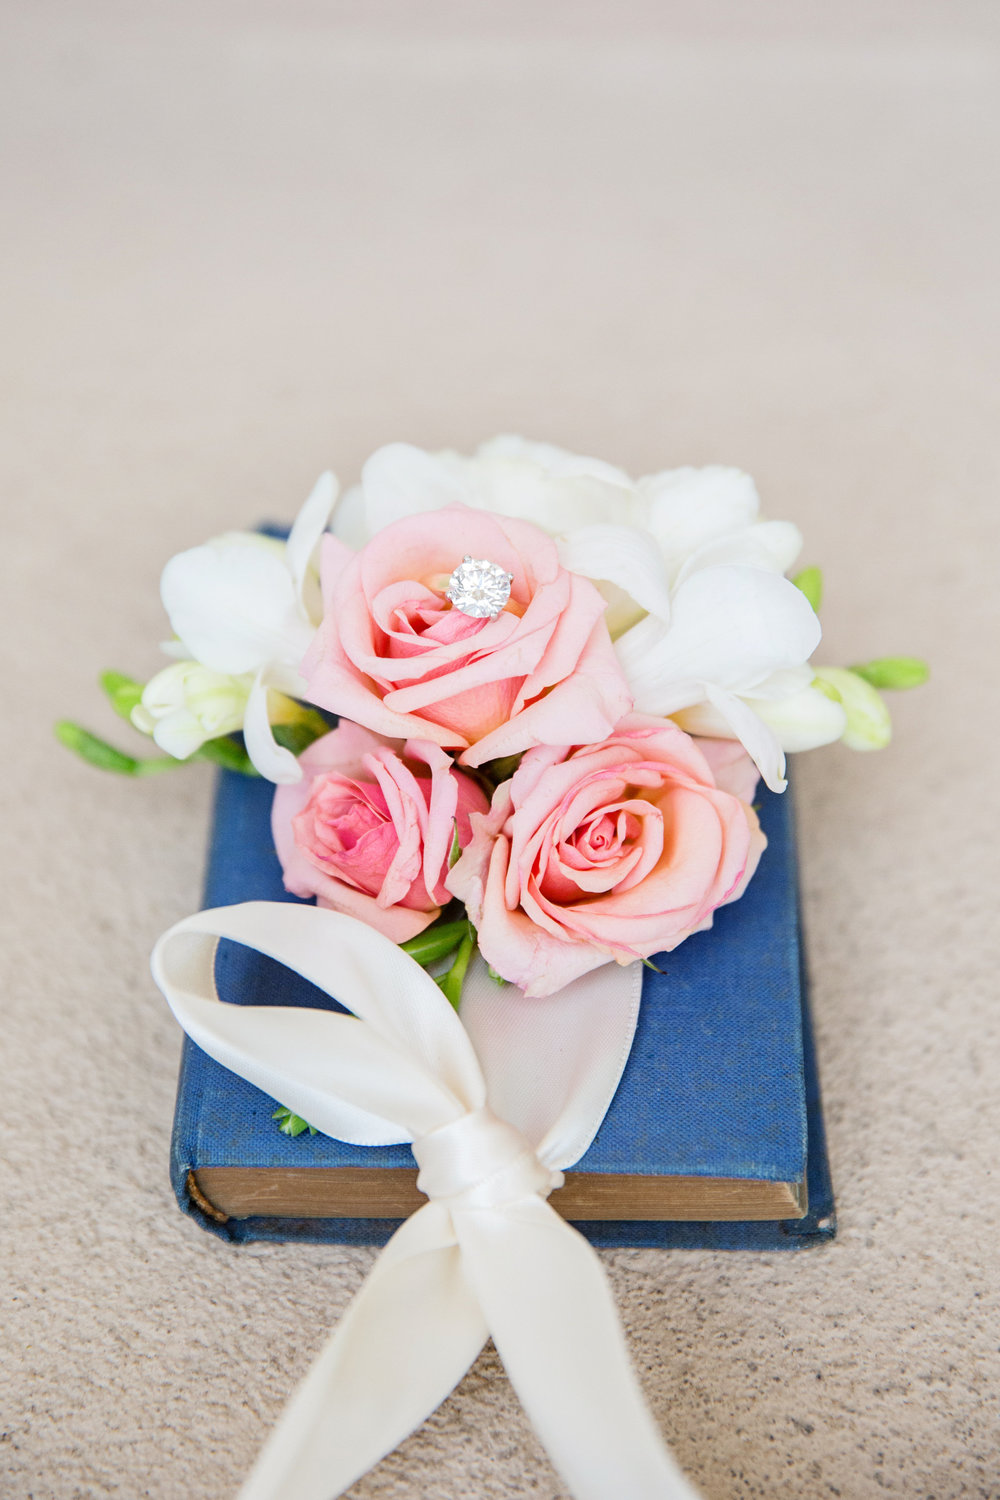 Arizona wedding, Camelback Mountain wedding, pink flowers, wedding prayer book, wedding details, bridal ring, wedding ring